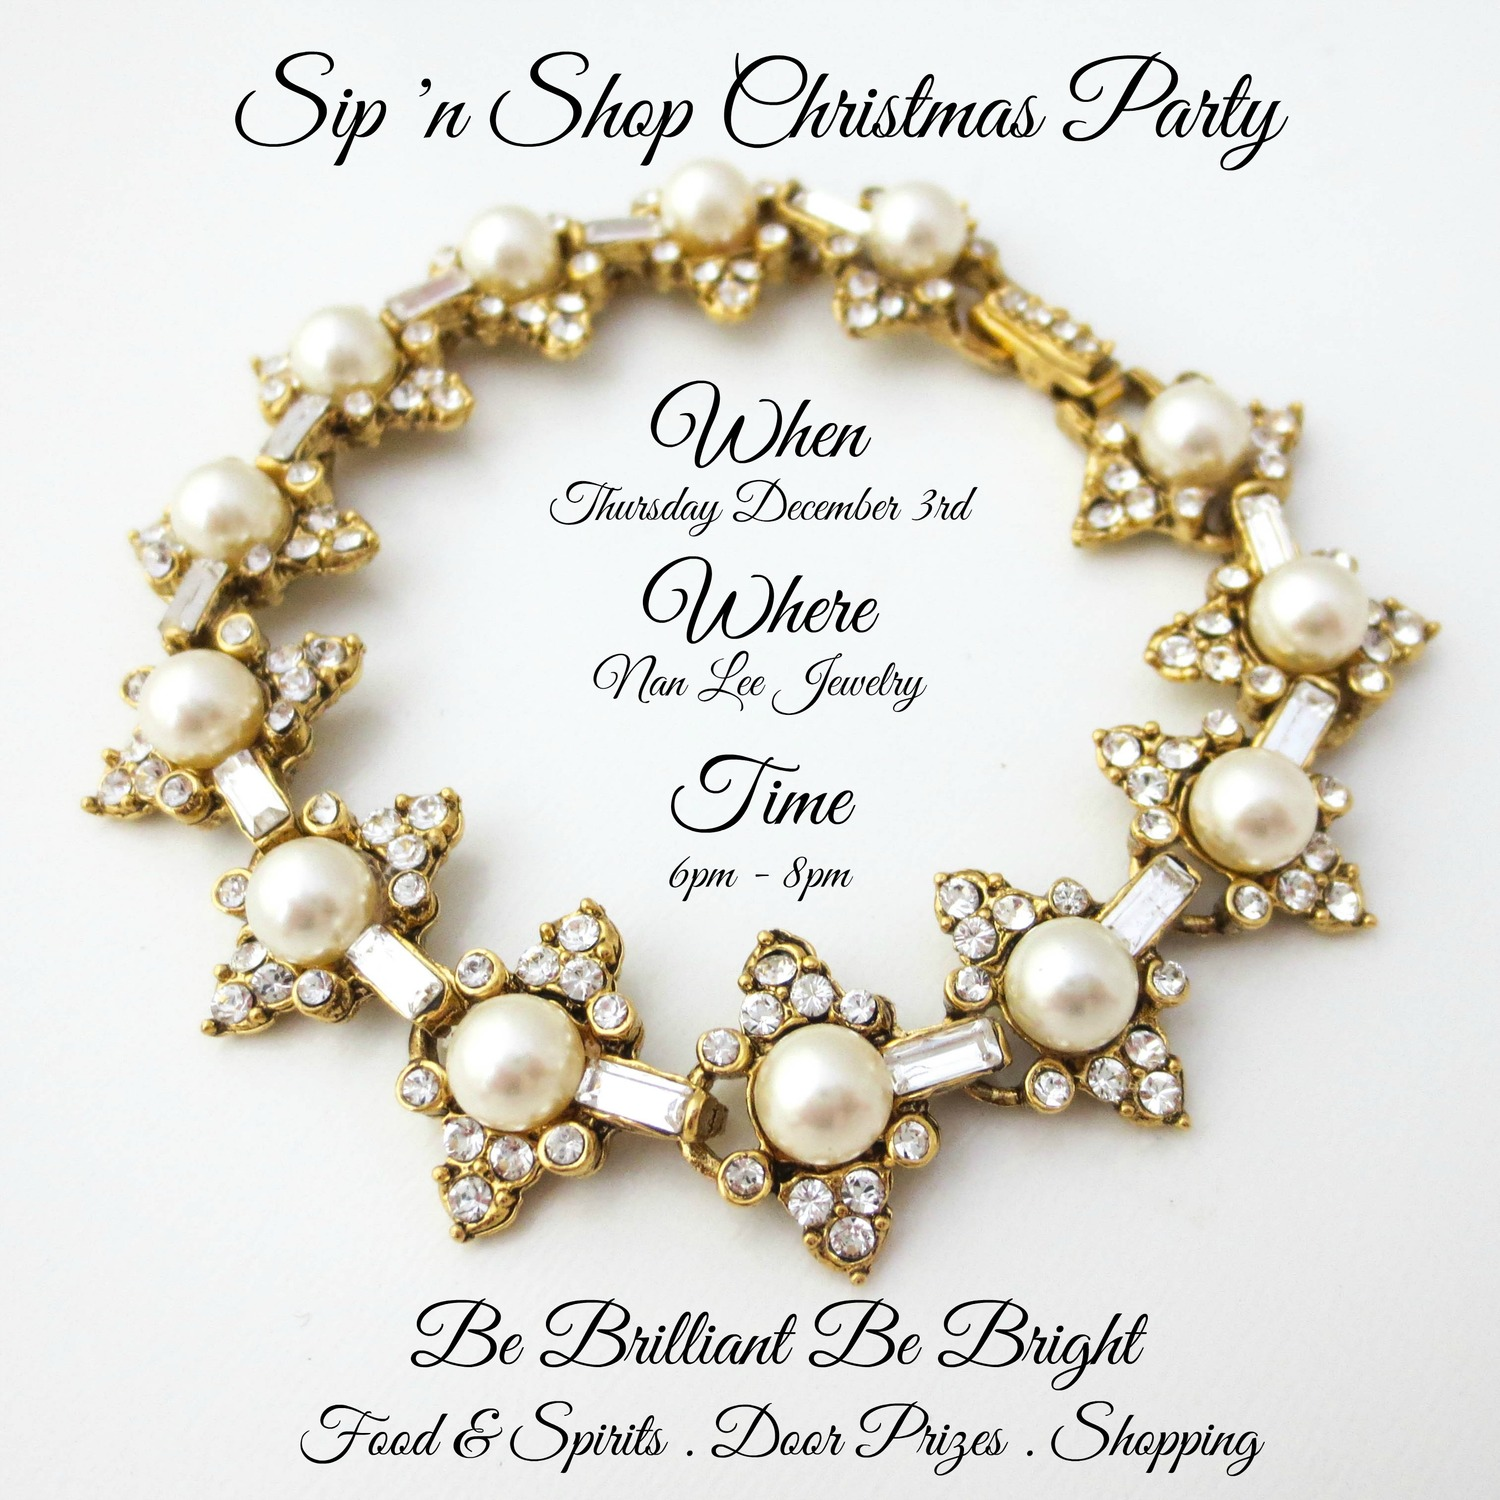 Save the Date- Sip & Shop Christmas Party   December 3 — Nan Lee Jewelry